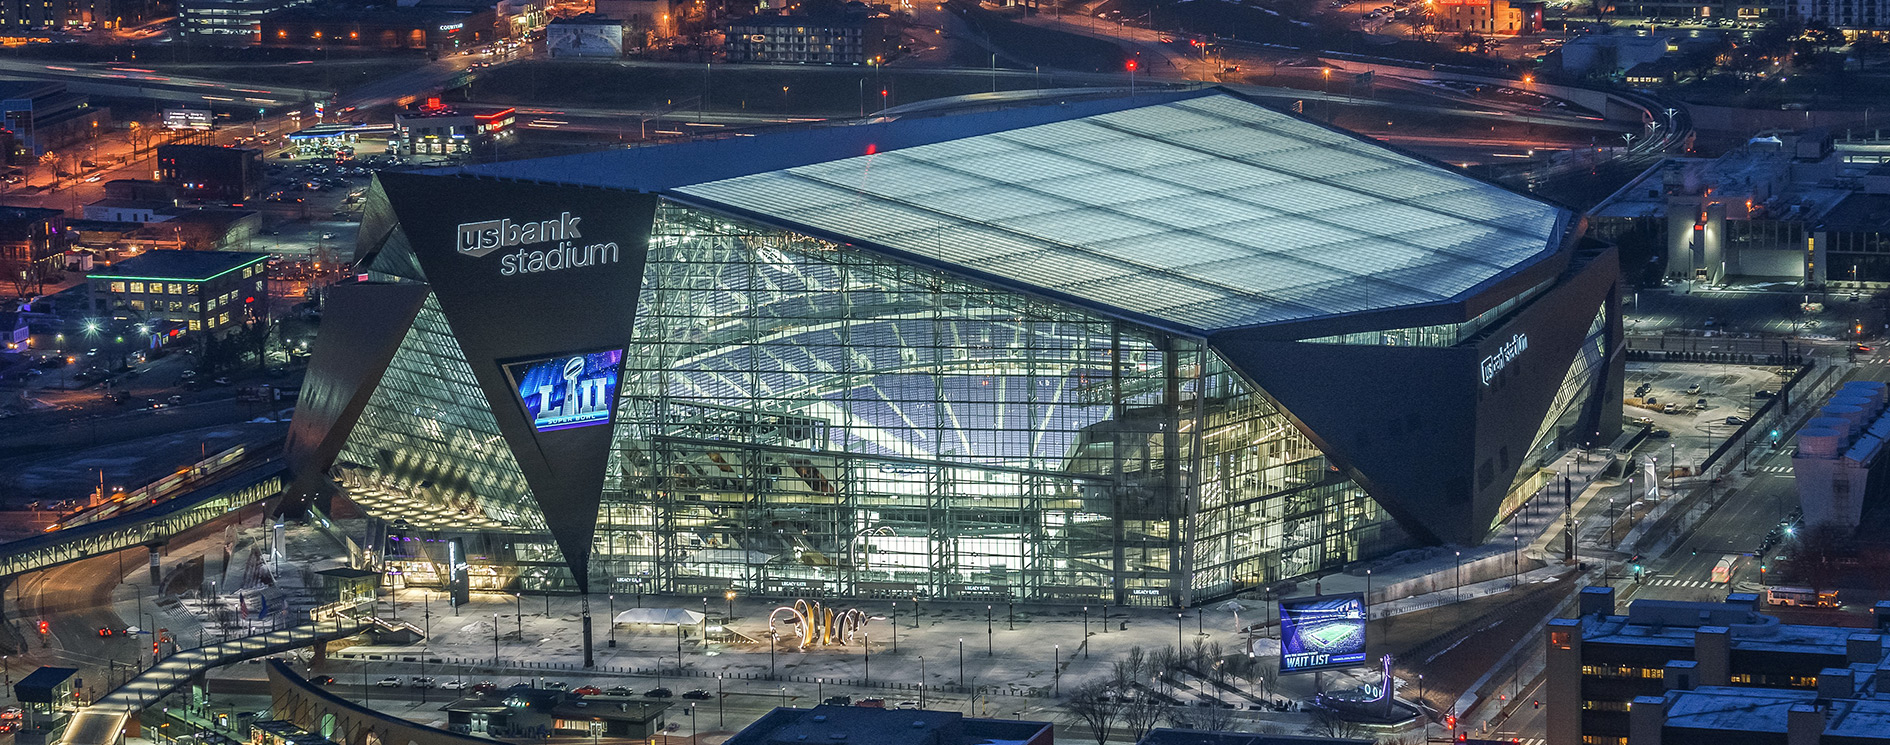 US Bank Stadium. Originally shown on the US BANK website